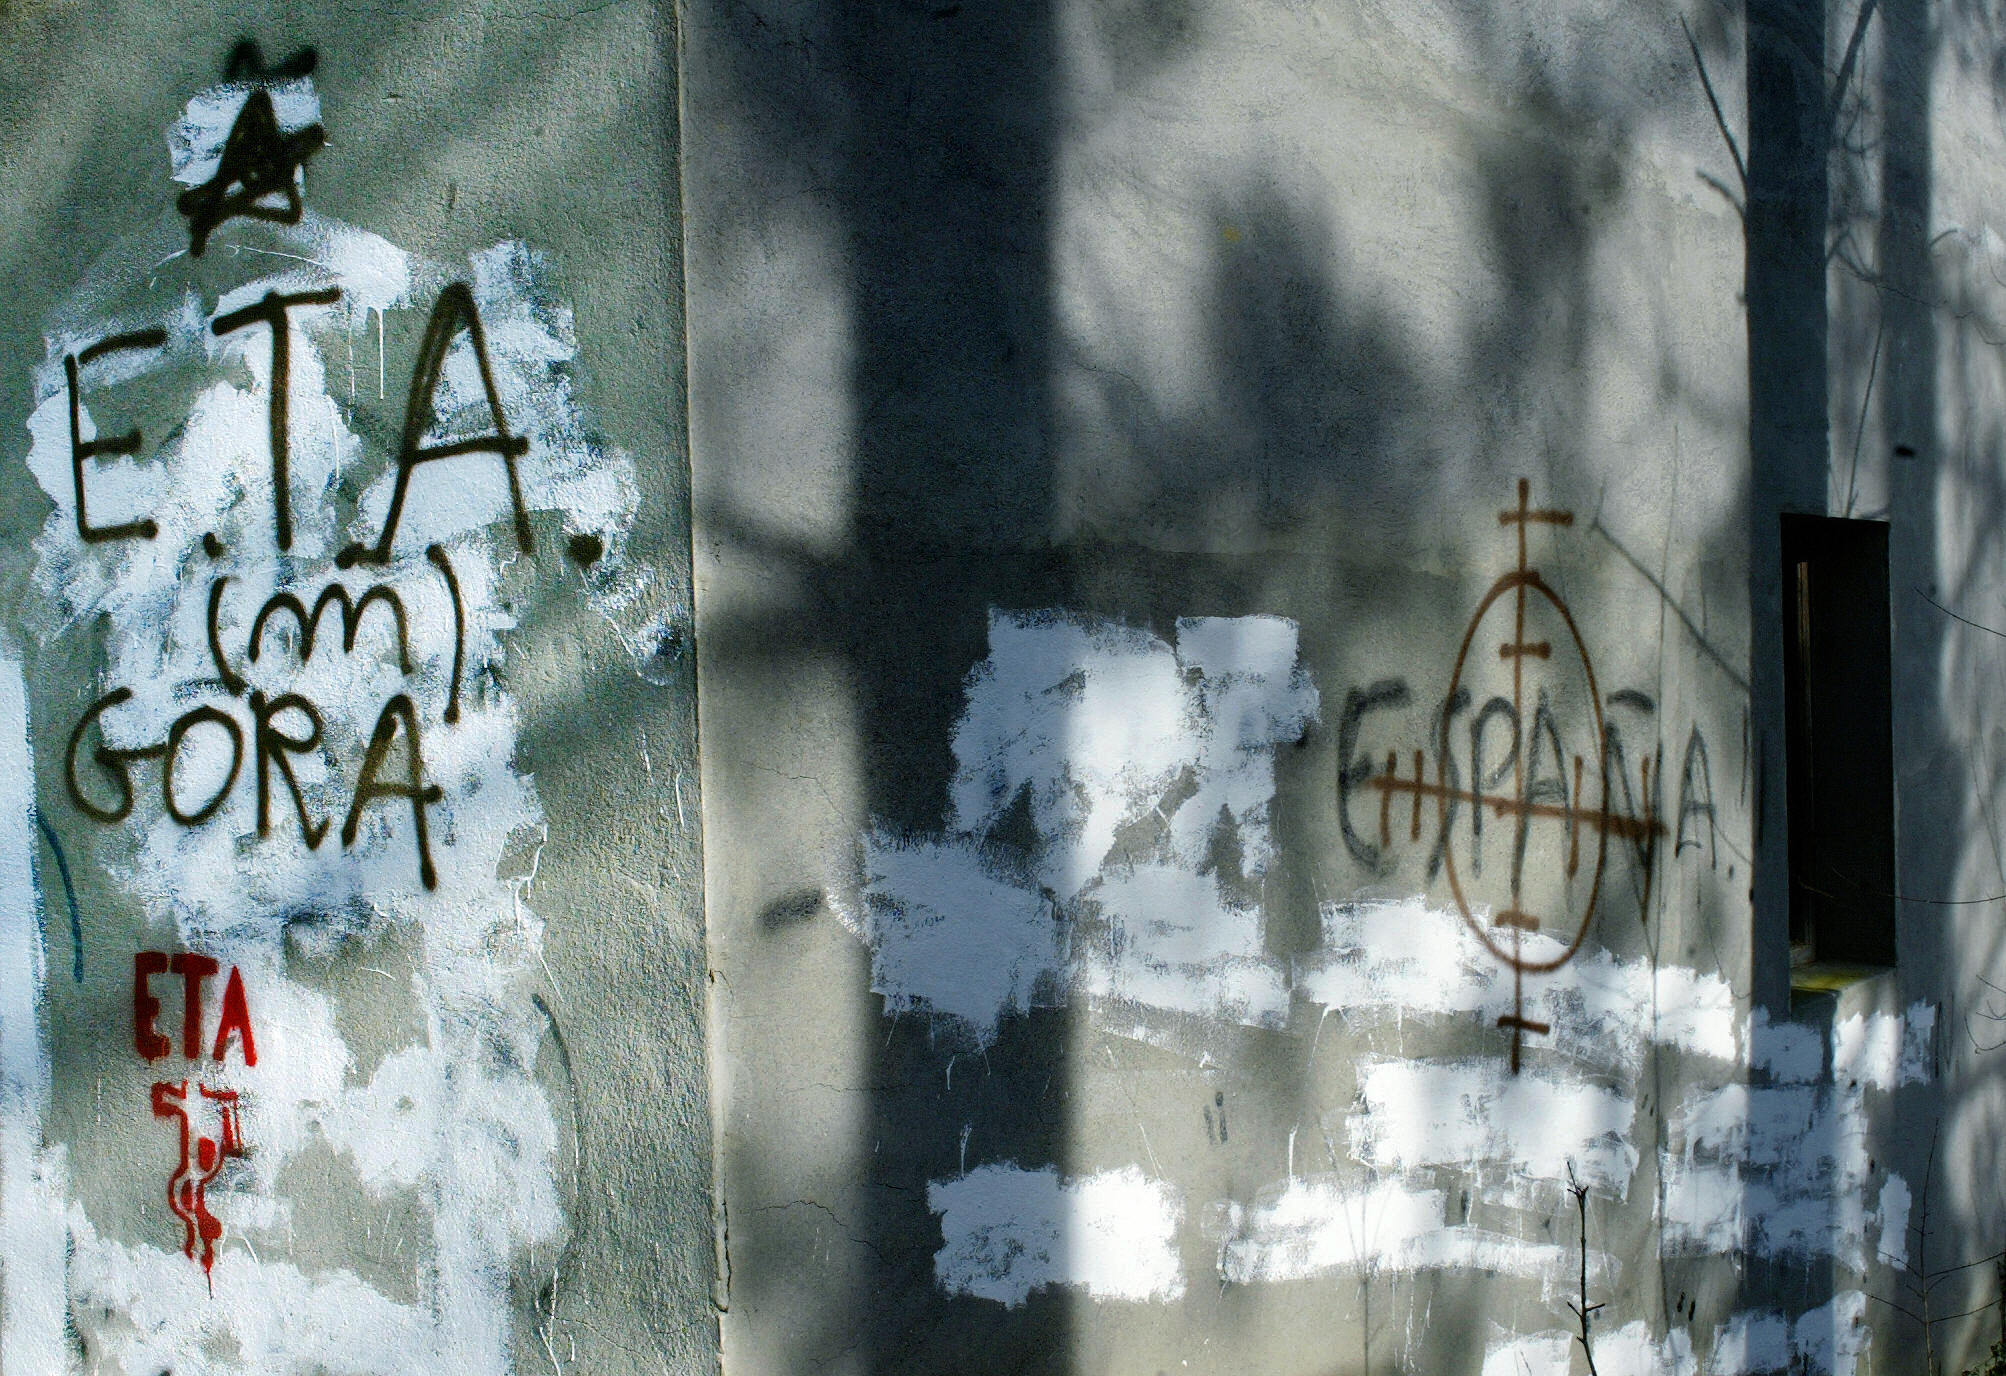 """Llodio, SPAIN: Graffiti in favor of armed Basque separatist group ETA, reading in Basque """"Up ETA"""" (L) and another bearing the """"Spain"""" in a target, are seen 25 February 2006 in the northern Spanish Basque village of Llodio. The Victims of Terrorism Association (AVT) and the opposition conservative Popular Party (PP) have called for a demonstration in Madrid 25 February 2006 today against any negotiations with ETA. The AVT and rightwing parties accuse the Socialist government of Prime Minister Jose Luis Rodriguez Zapatero of negotiating secretly with ETA, although Madrid has insisted this is not the case and that the group must lay down its arms before a dialogue can take place. AFP PHOTO / RAFA RIVAS (Photo credit should read RAFA RIVAS/AFP via Getty Images)"""